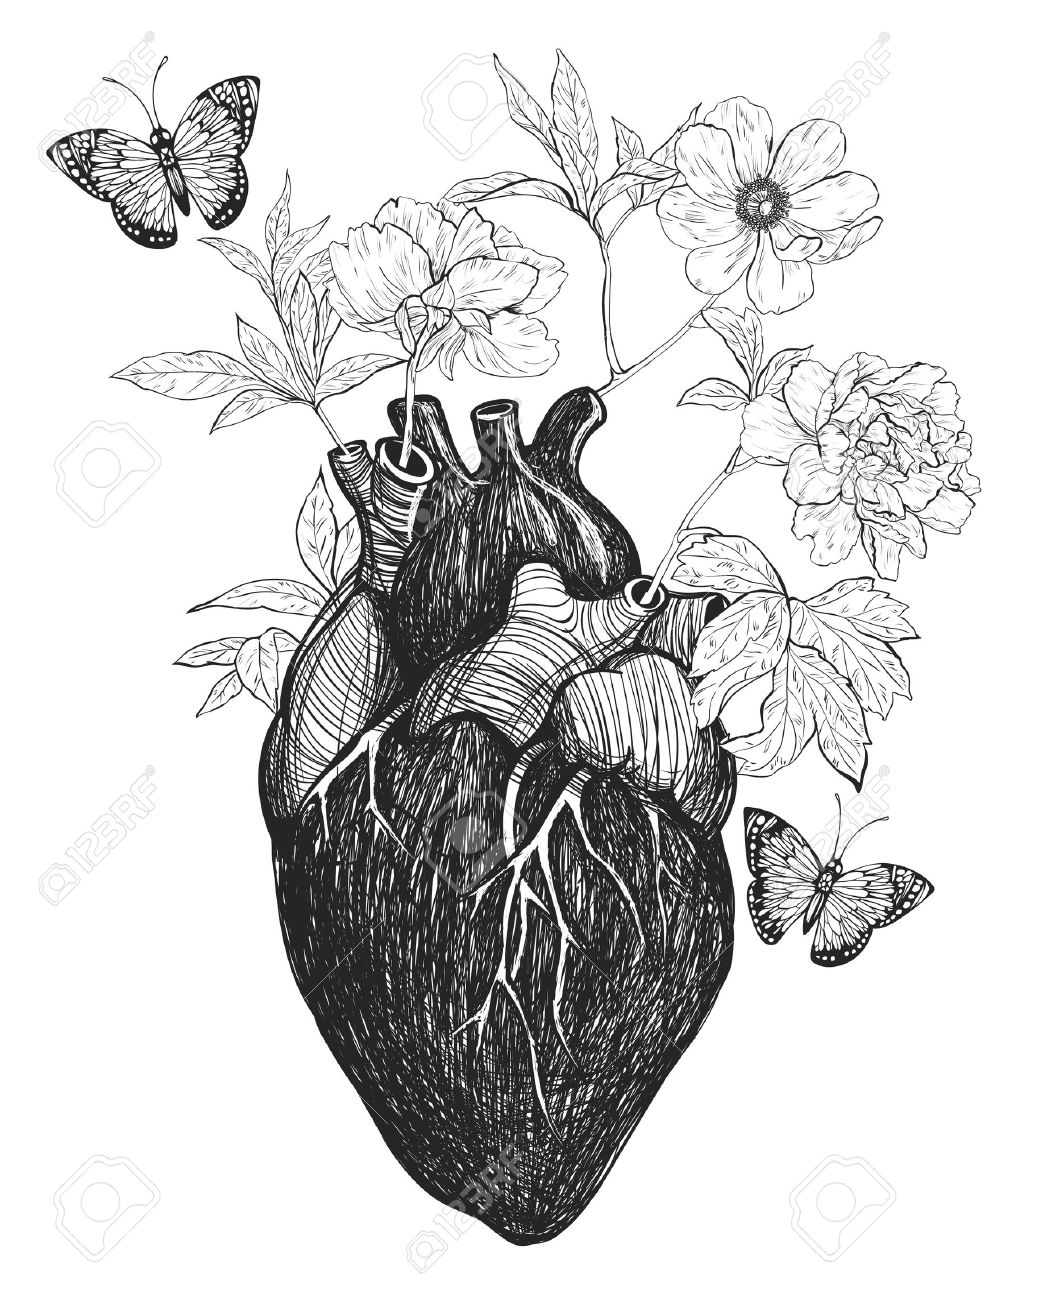 Human Anatomical Heart With Flowers Isolated On White Background